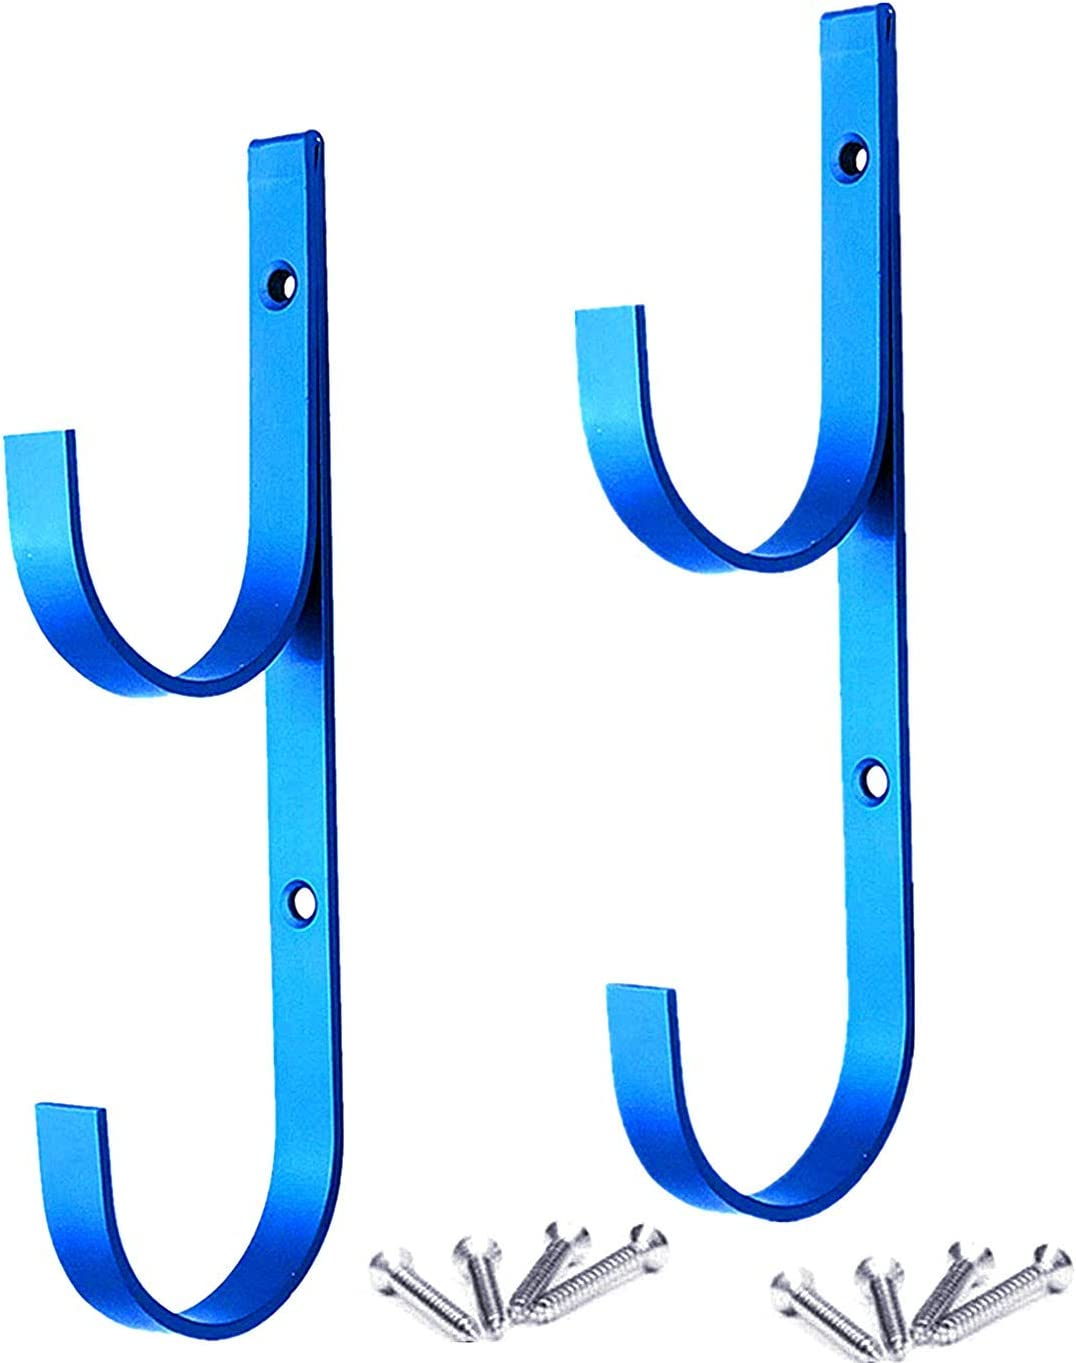 2 Pcs Set Pool Pole Hangers Heavy Duty Blue Aluminium Holder with Screws Perfect Hooks for Swimming Pool Telescopic Poles Skimmers Nets Brushes Vacuum Hose Garden Equipment Outdoor Supplies